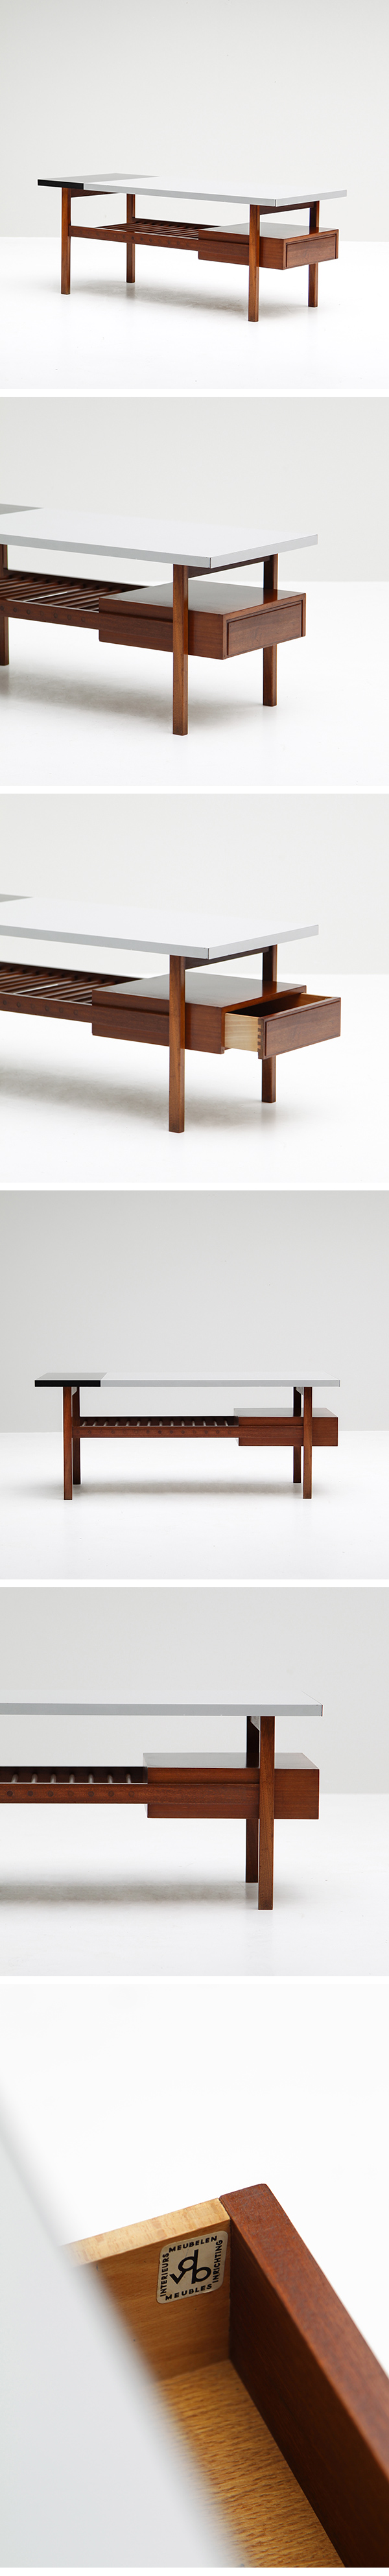 Rare, Van Den Berghe Pauvers, coffee table